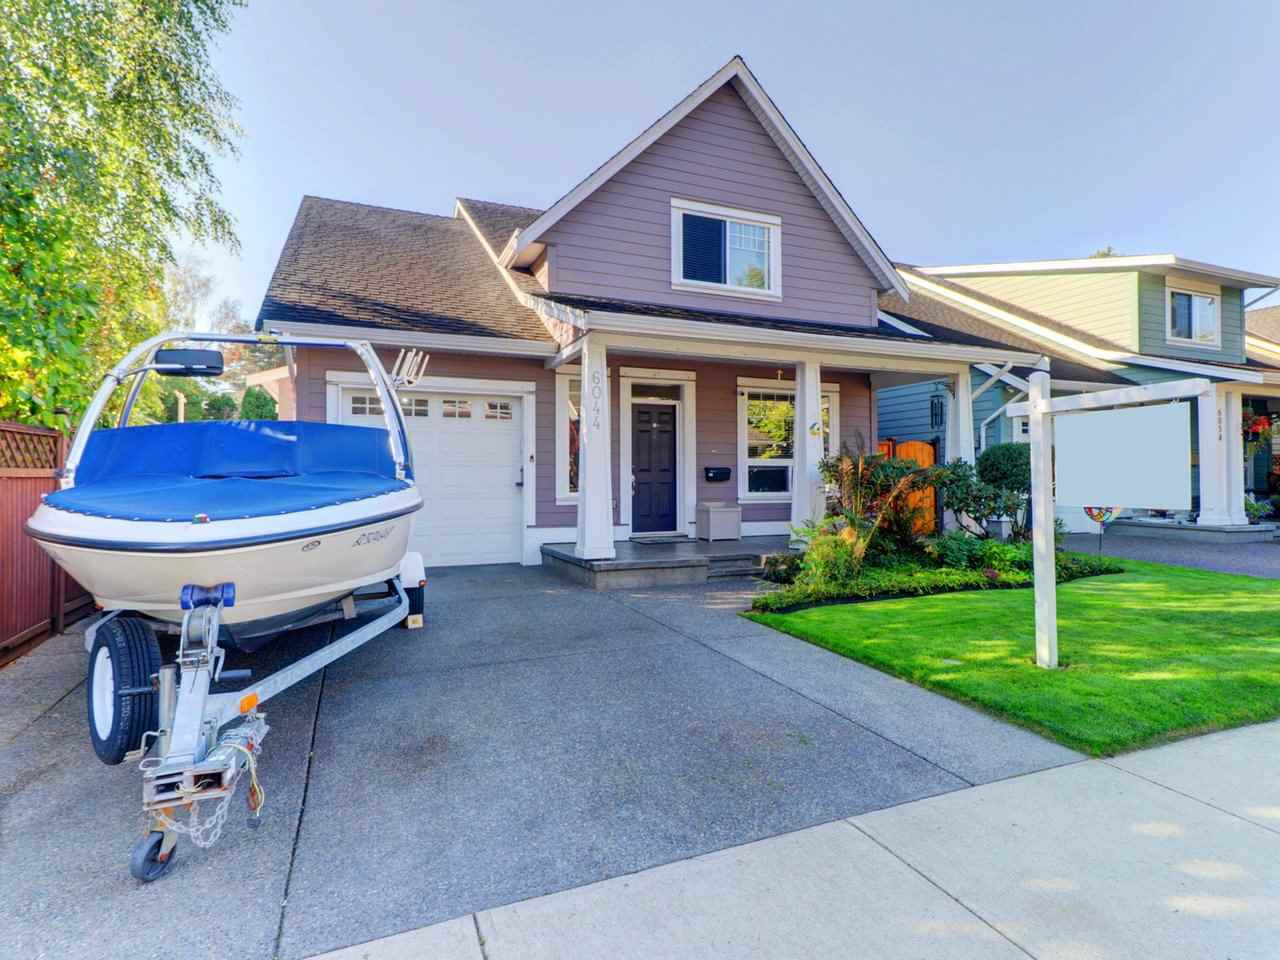 """Main Photo: 6044 46A Avenue in Delta: Holly House for sale in """"SANDERSON LANE"""" (Ladner)  : MLS®# R2496420"""